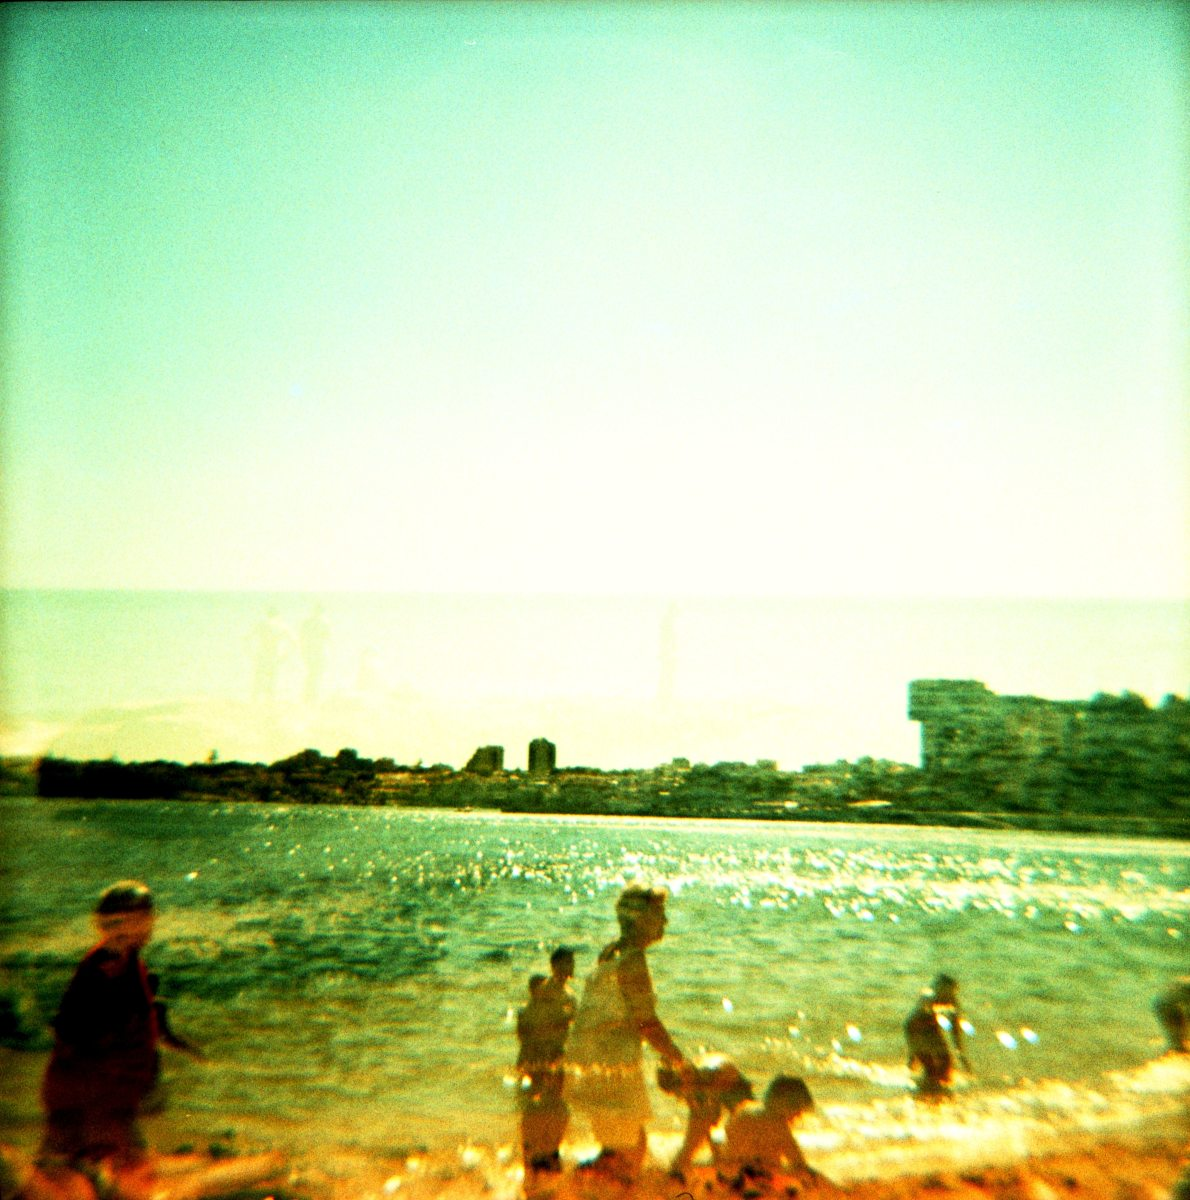 A double exposure I did with a Diana camera